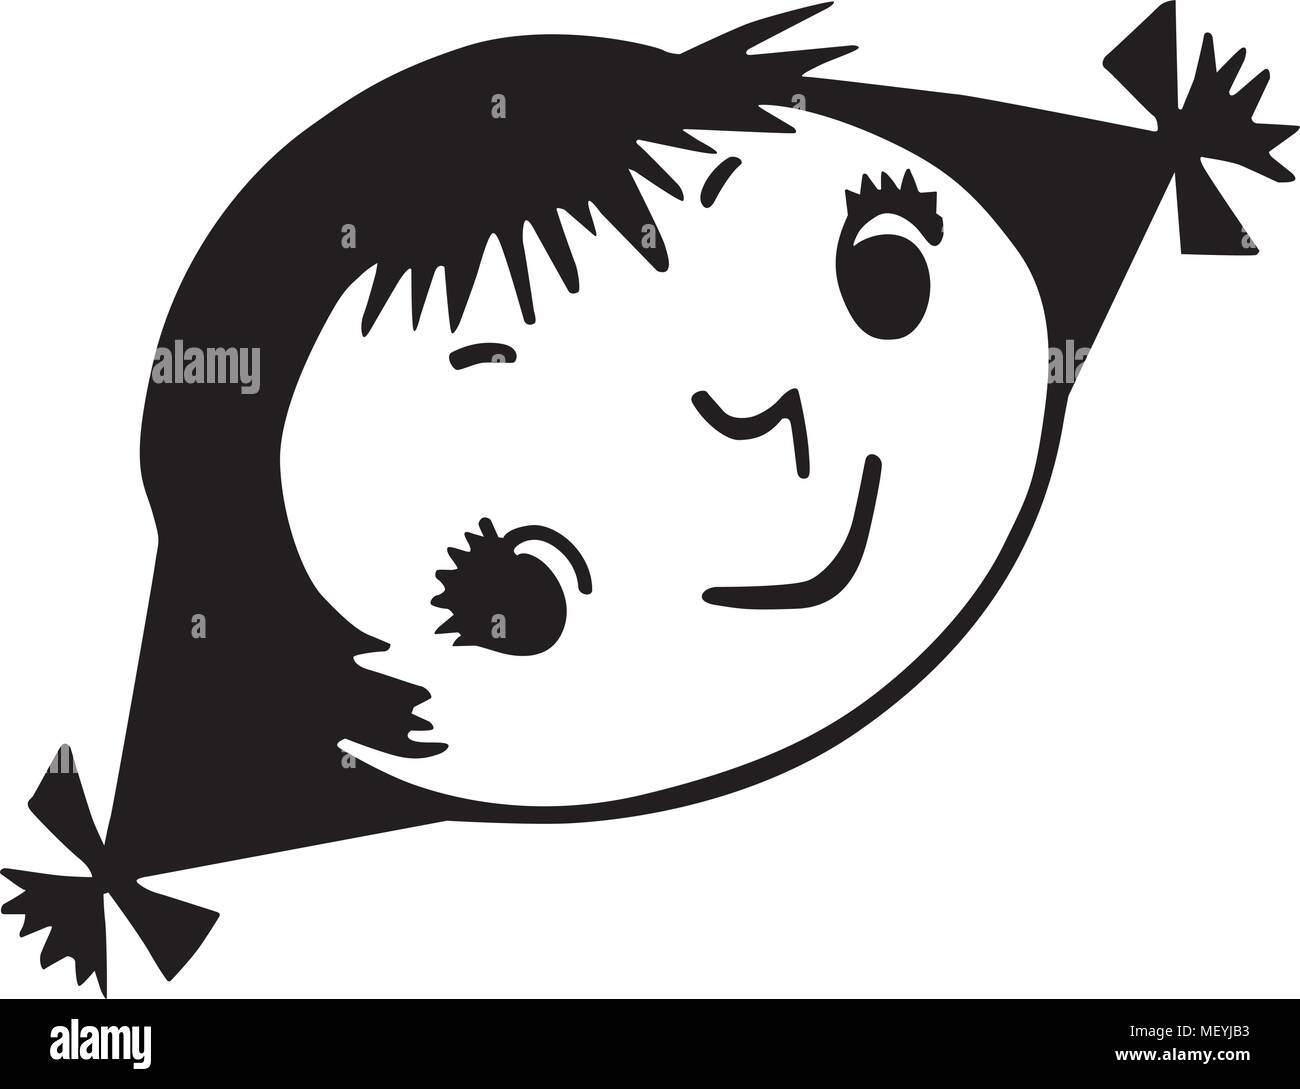 Cute cartoon girl with pigtails, black hair and dark skin ...Jaelyn image  applique idea.   Girl with pigtails, Cute cartoon girl, Girl cartoon